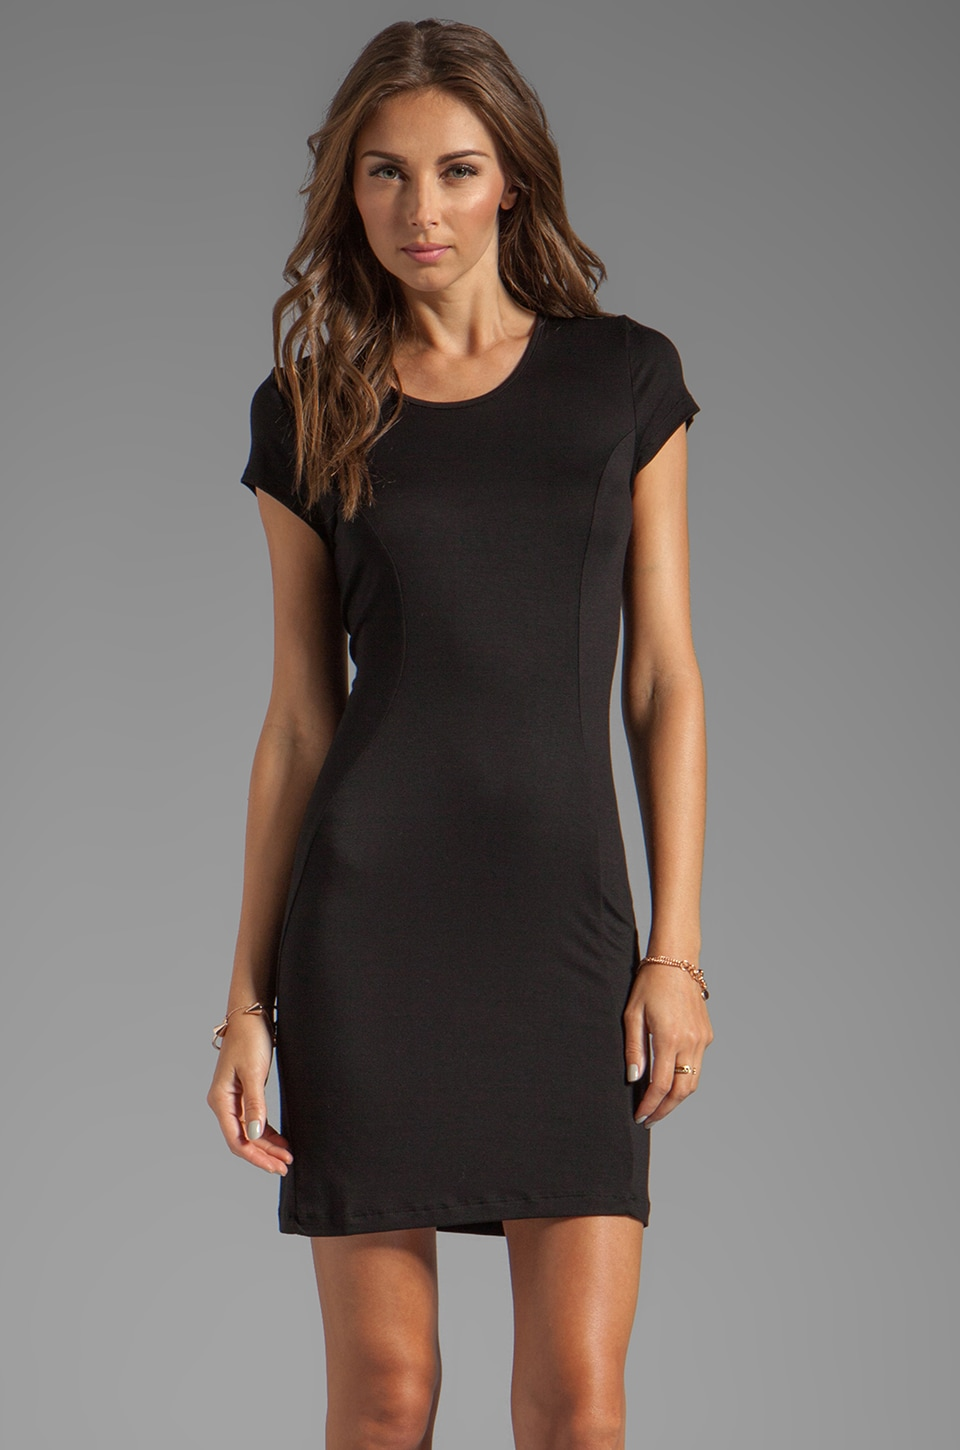 Nation LTD La Quinta Dress in Black